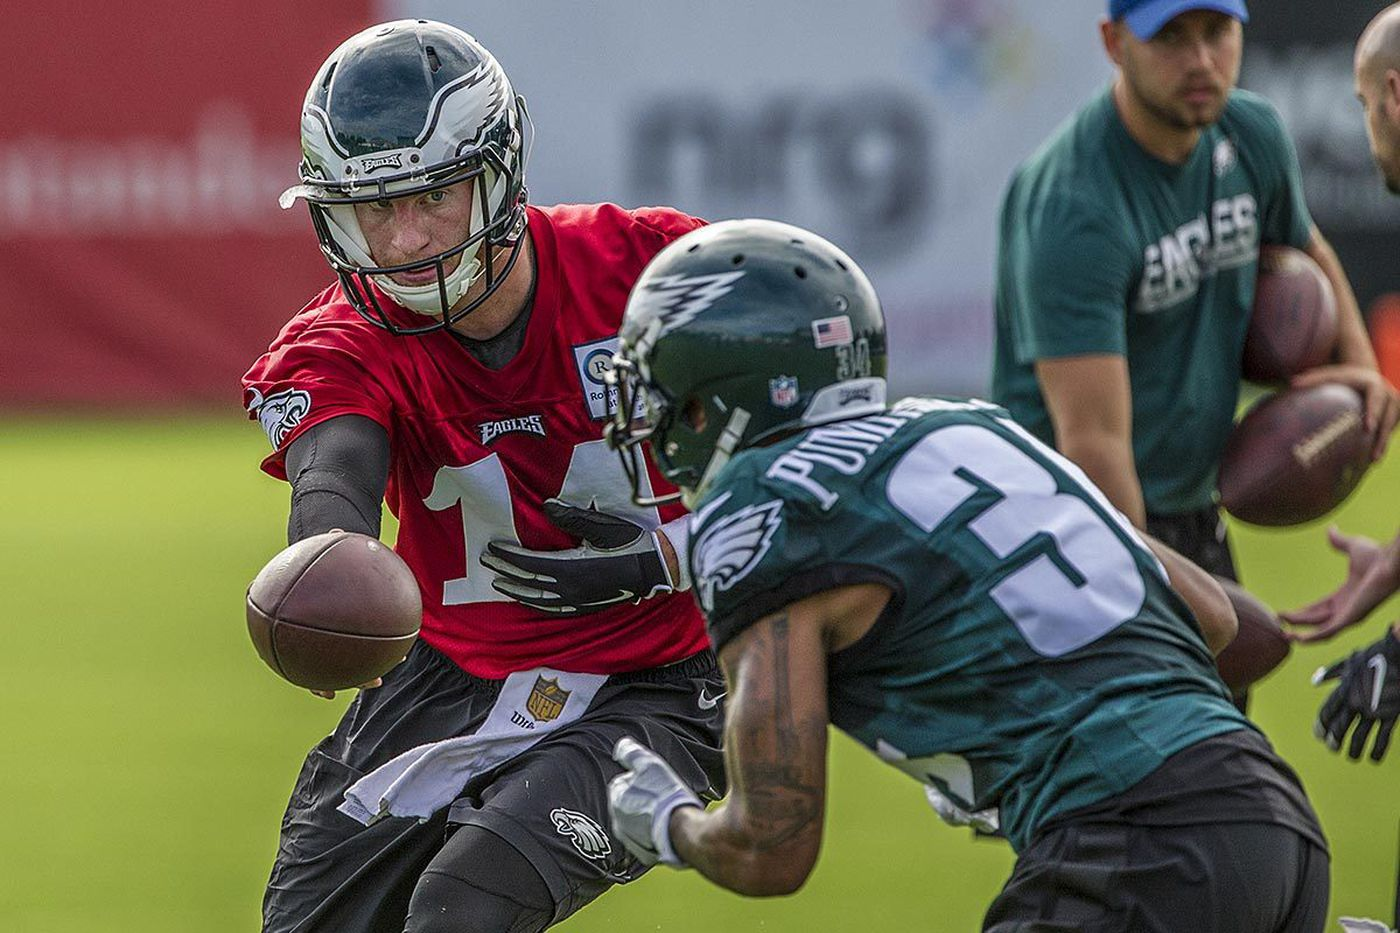 Eagles practice observations: Highlights from Day 1